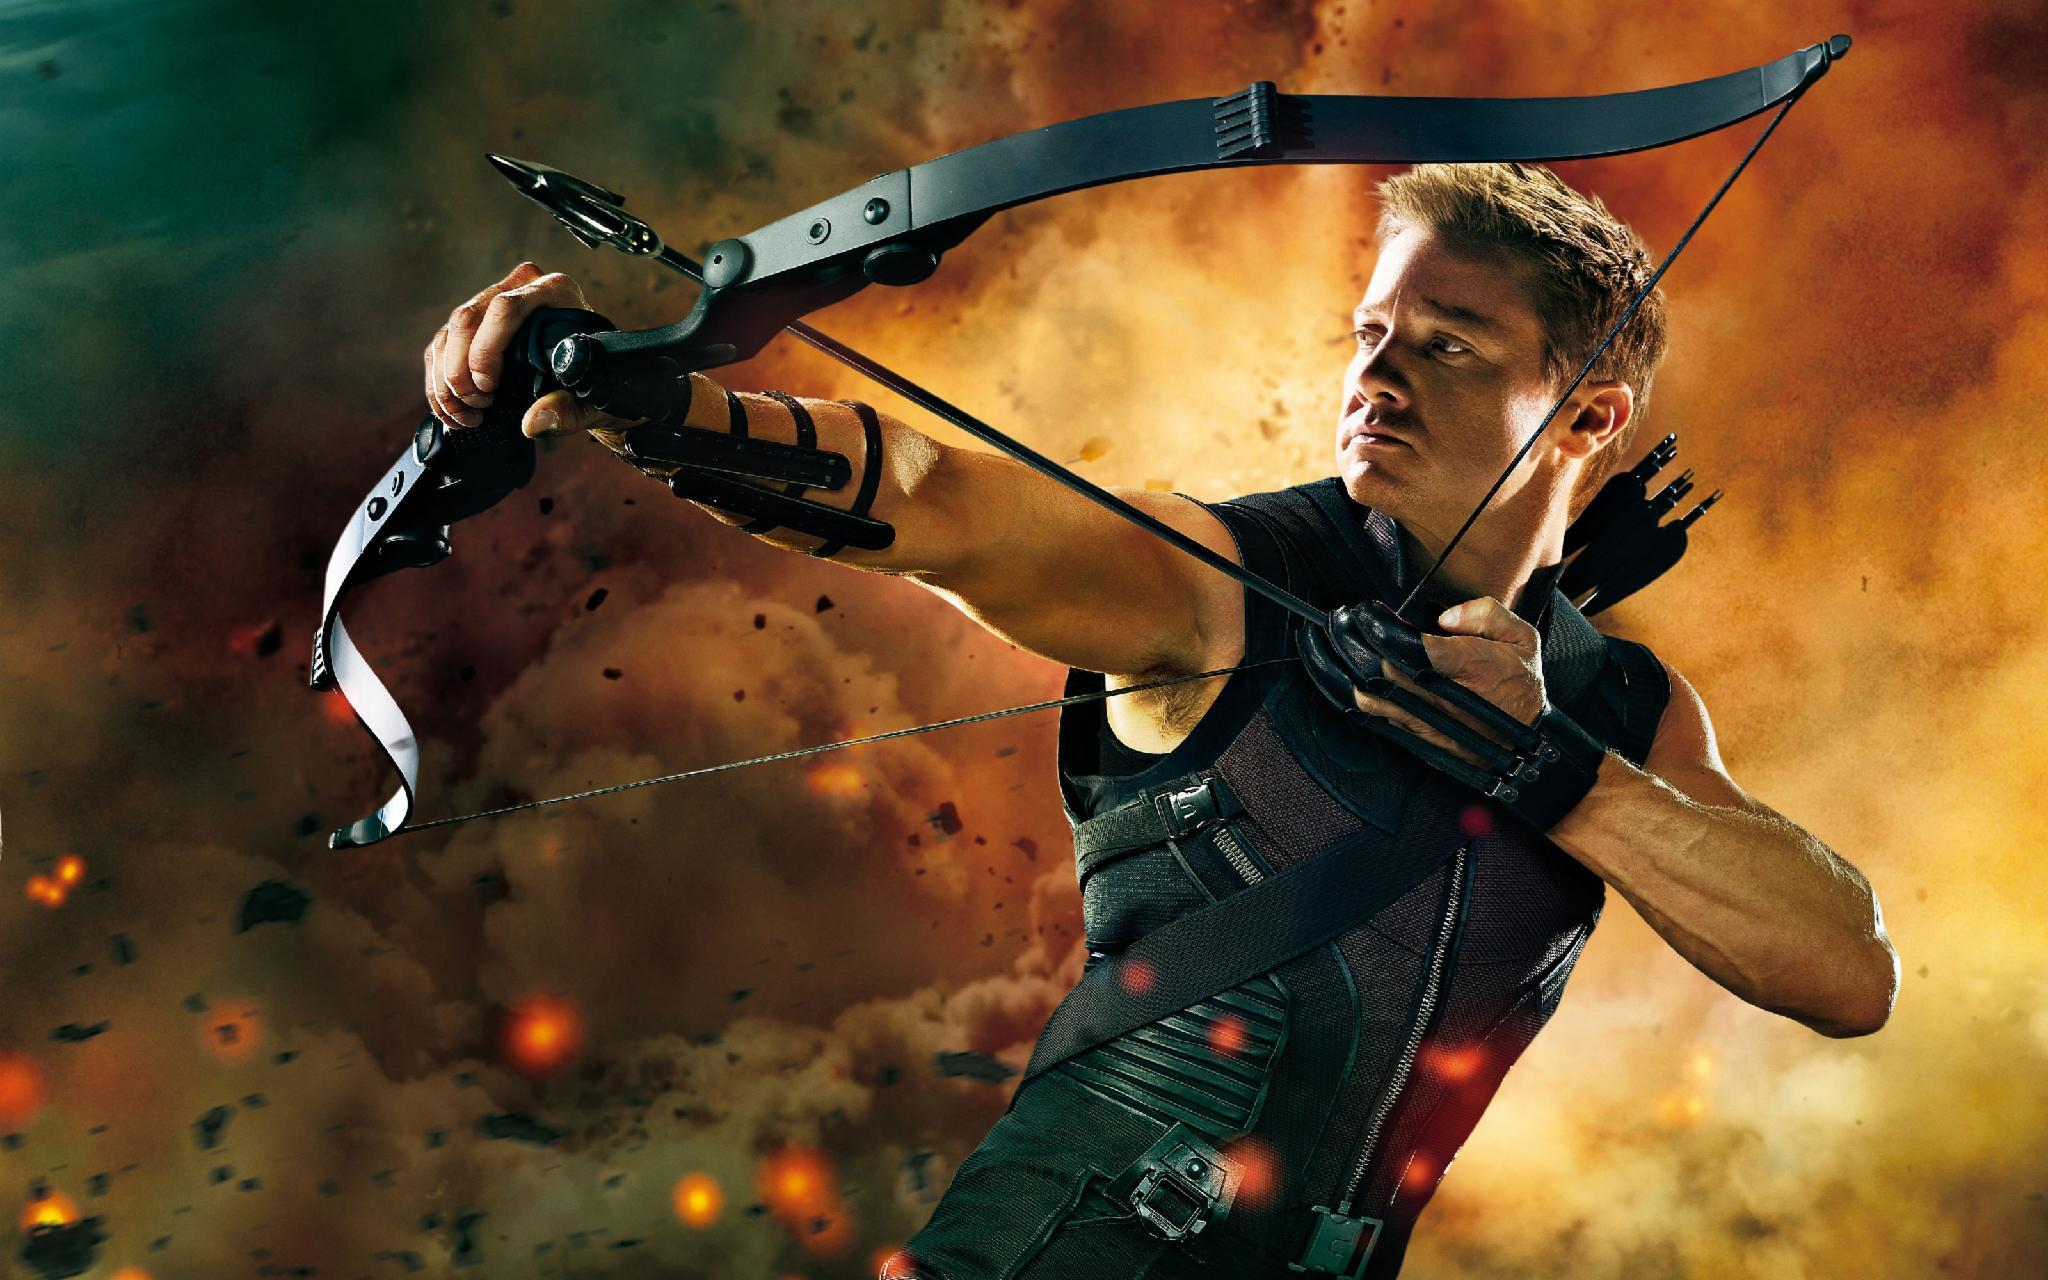 Hawkeye or Greenarrow?